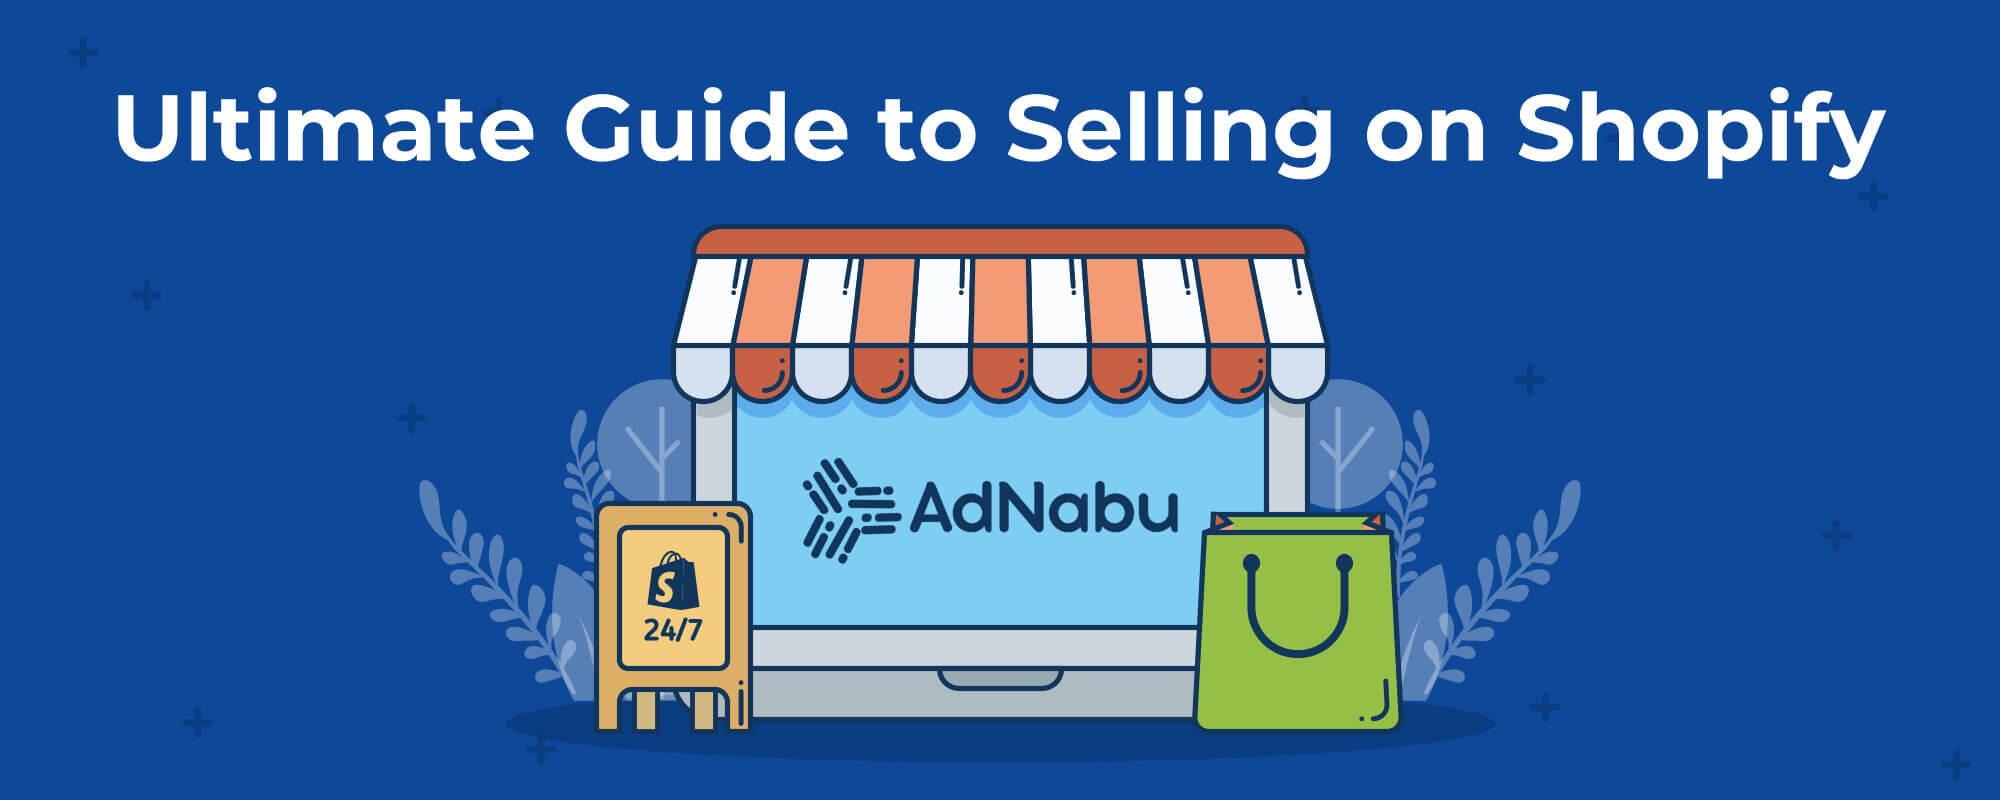 Ultimate_guide_to_selling_on_shopify_AdNabu_2020